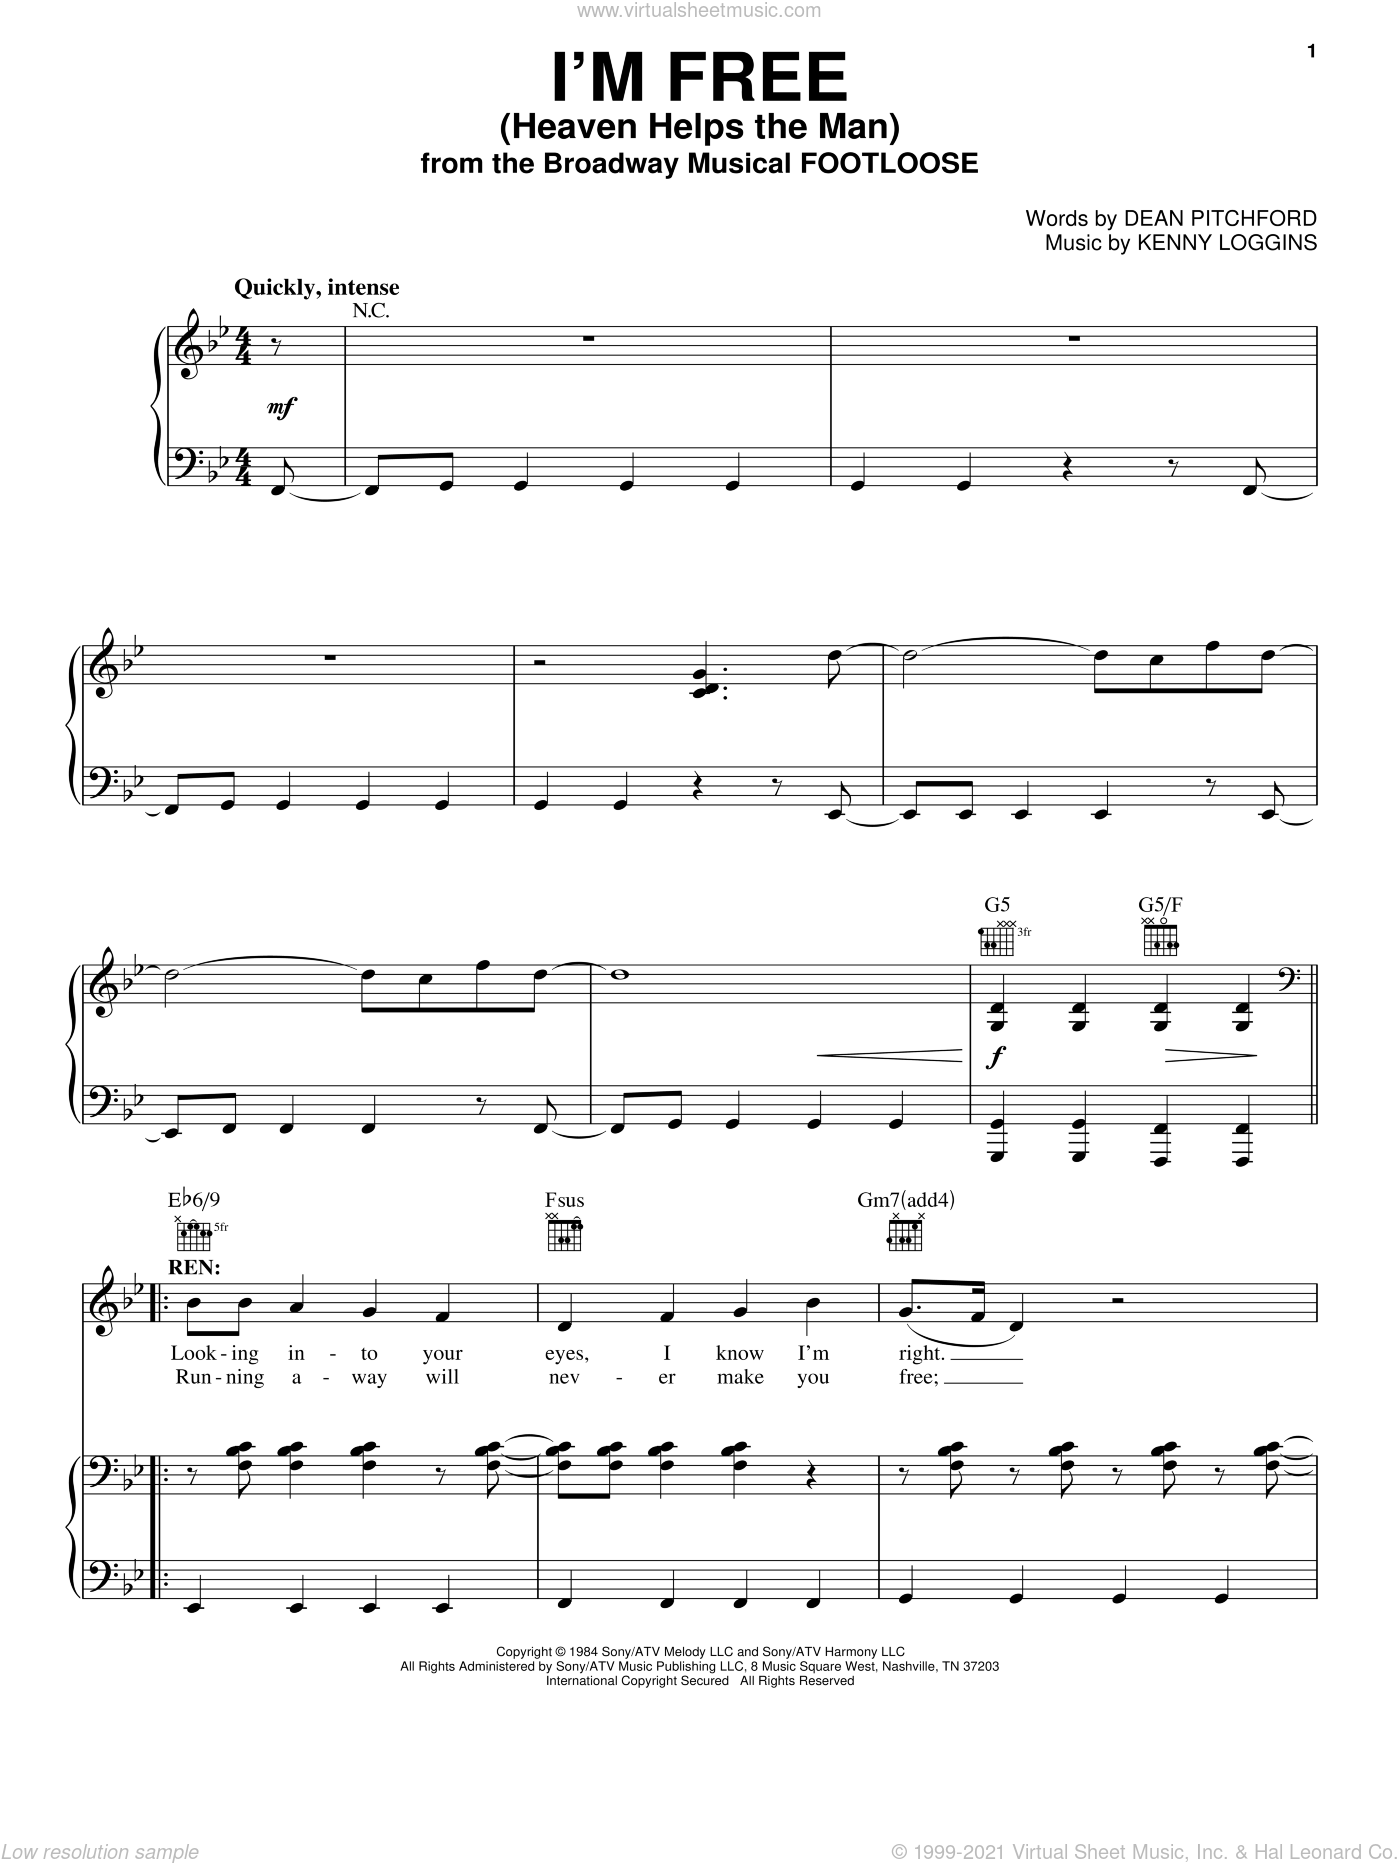 I'm Free (Heaven Helps The Man) sheet music for voice, piano or guitar by Dean Pitchford, Footloose (Musical), Kenny Loggins and Tom Snow, intermediate skill level